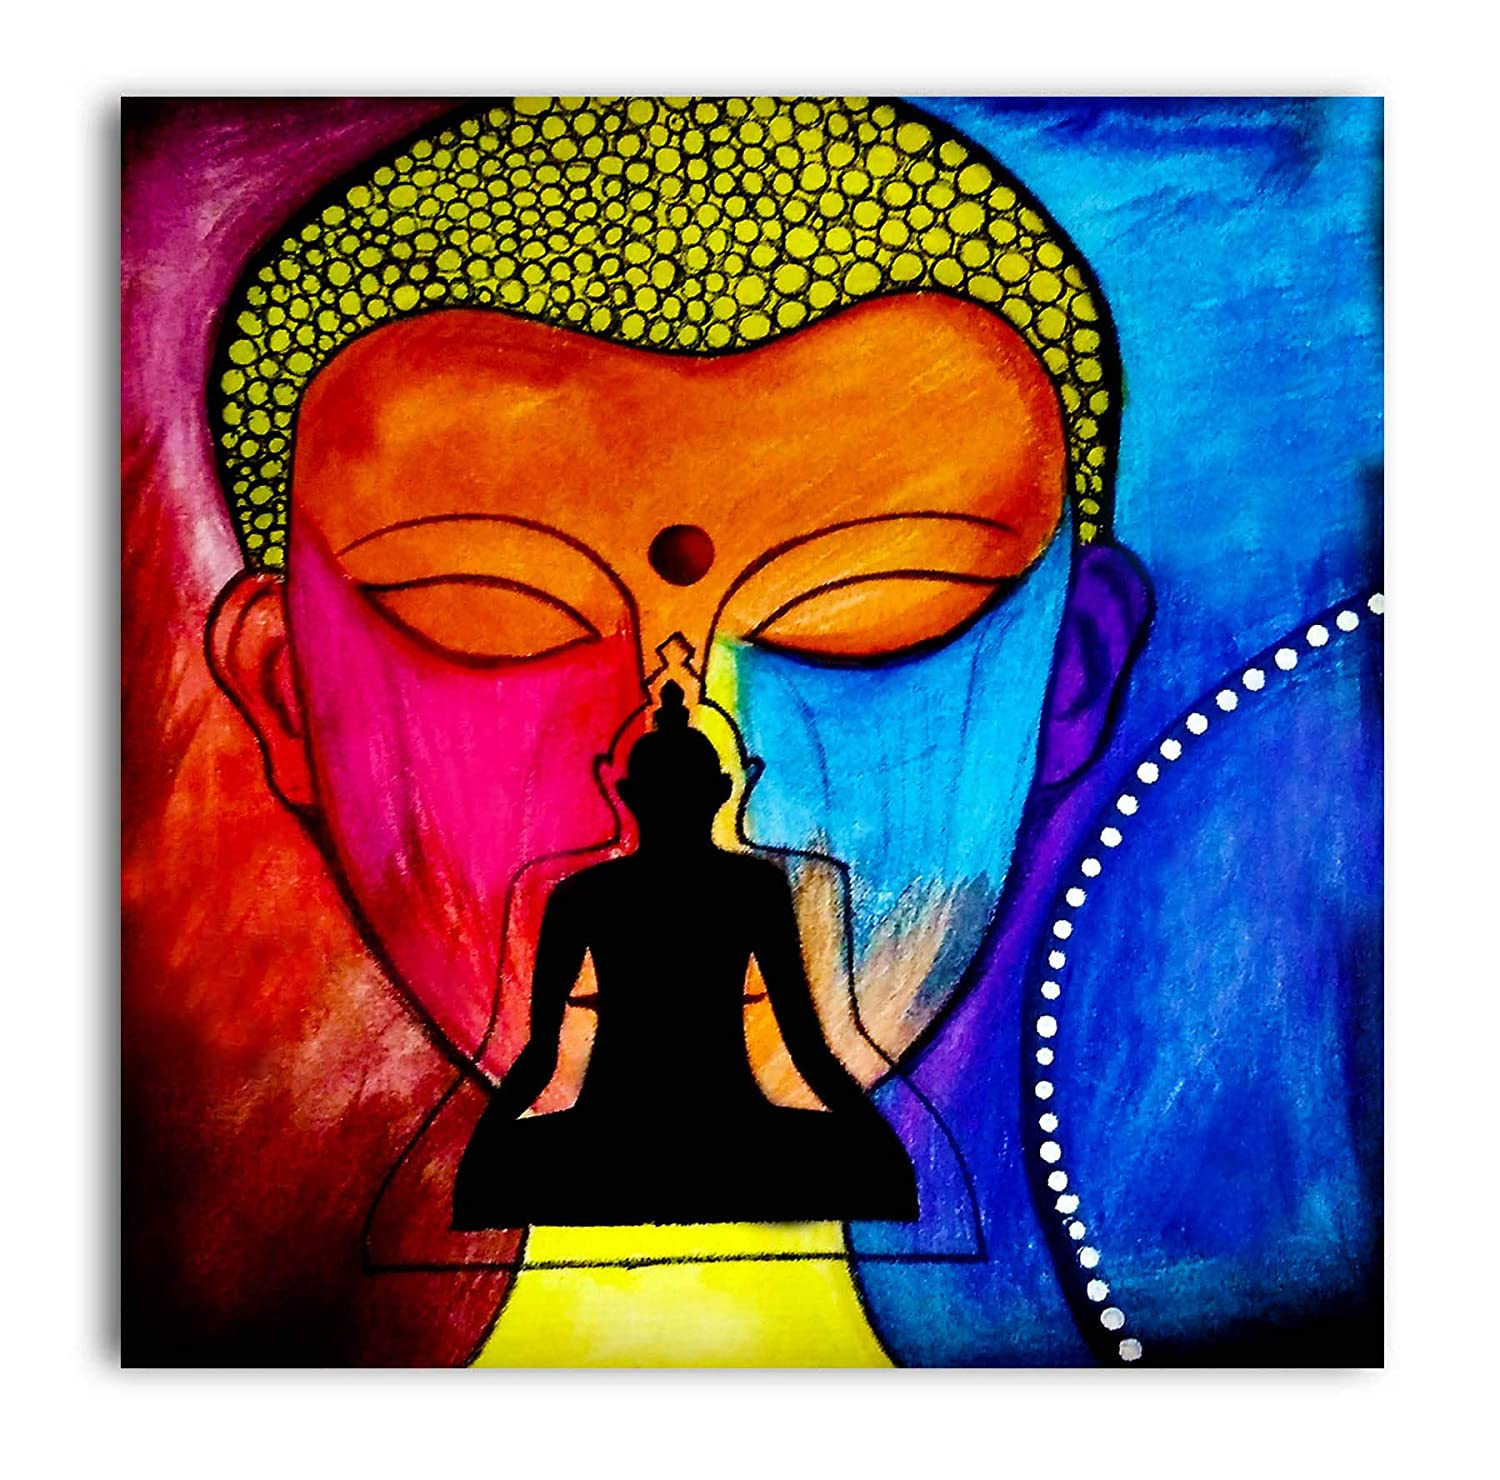 Tamatina Buddha Canvas Paintings Face Of Buddha Modern Art Buddha Buddhism Paintings Buddha Paintings For Home Decor Paintings For Bedroom Paintings For Living Room Religious